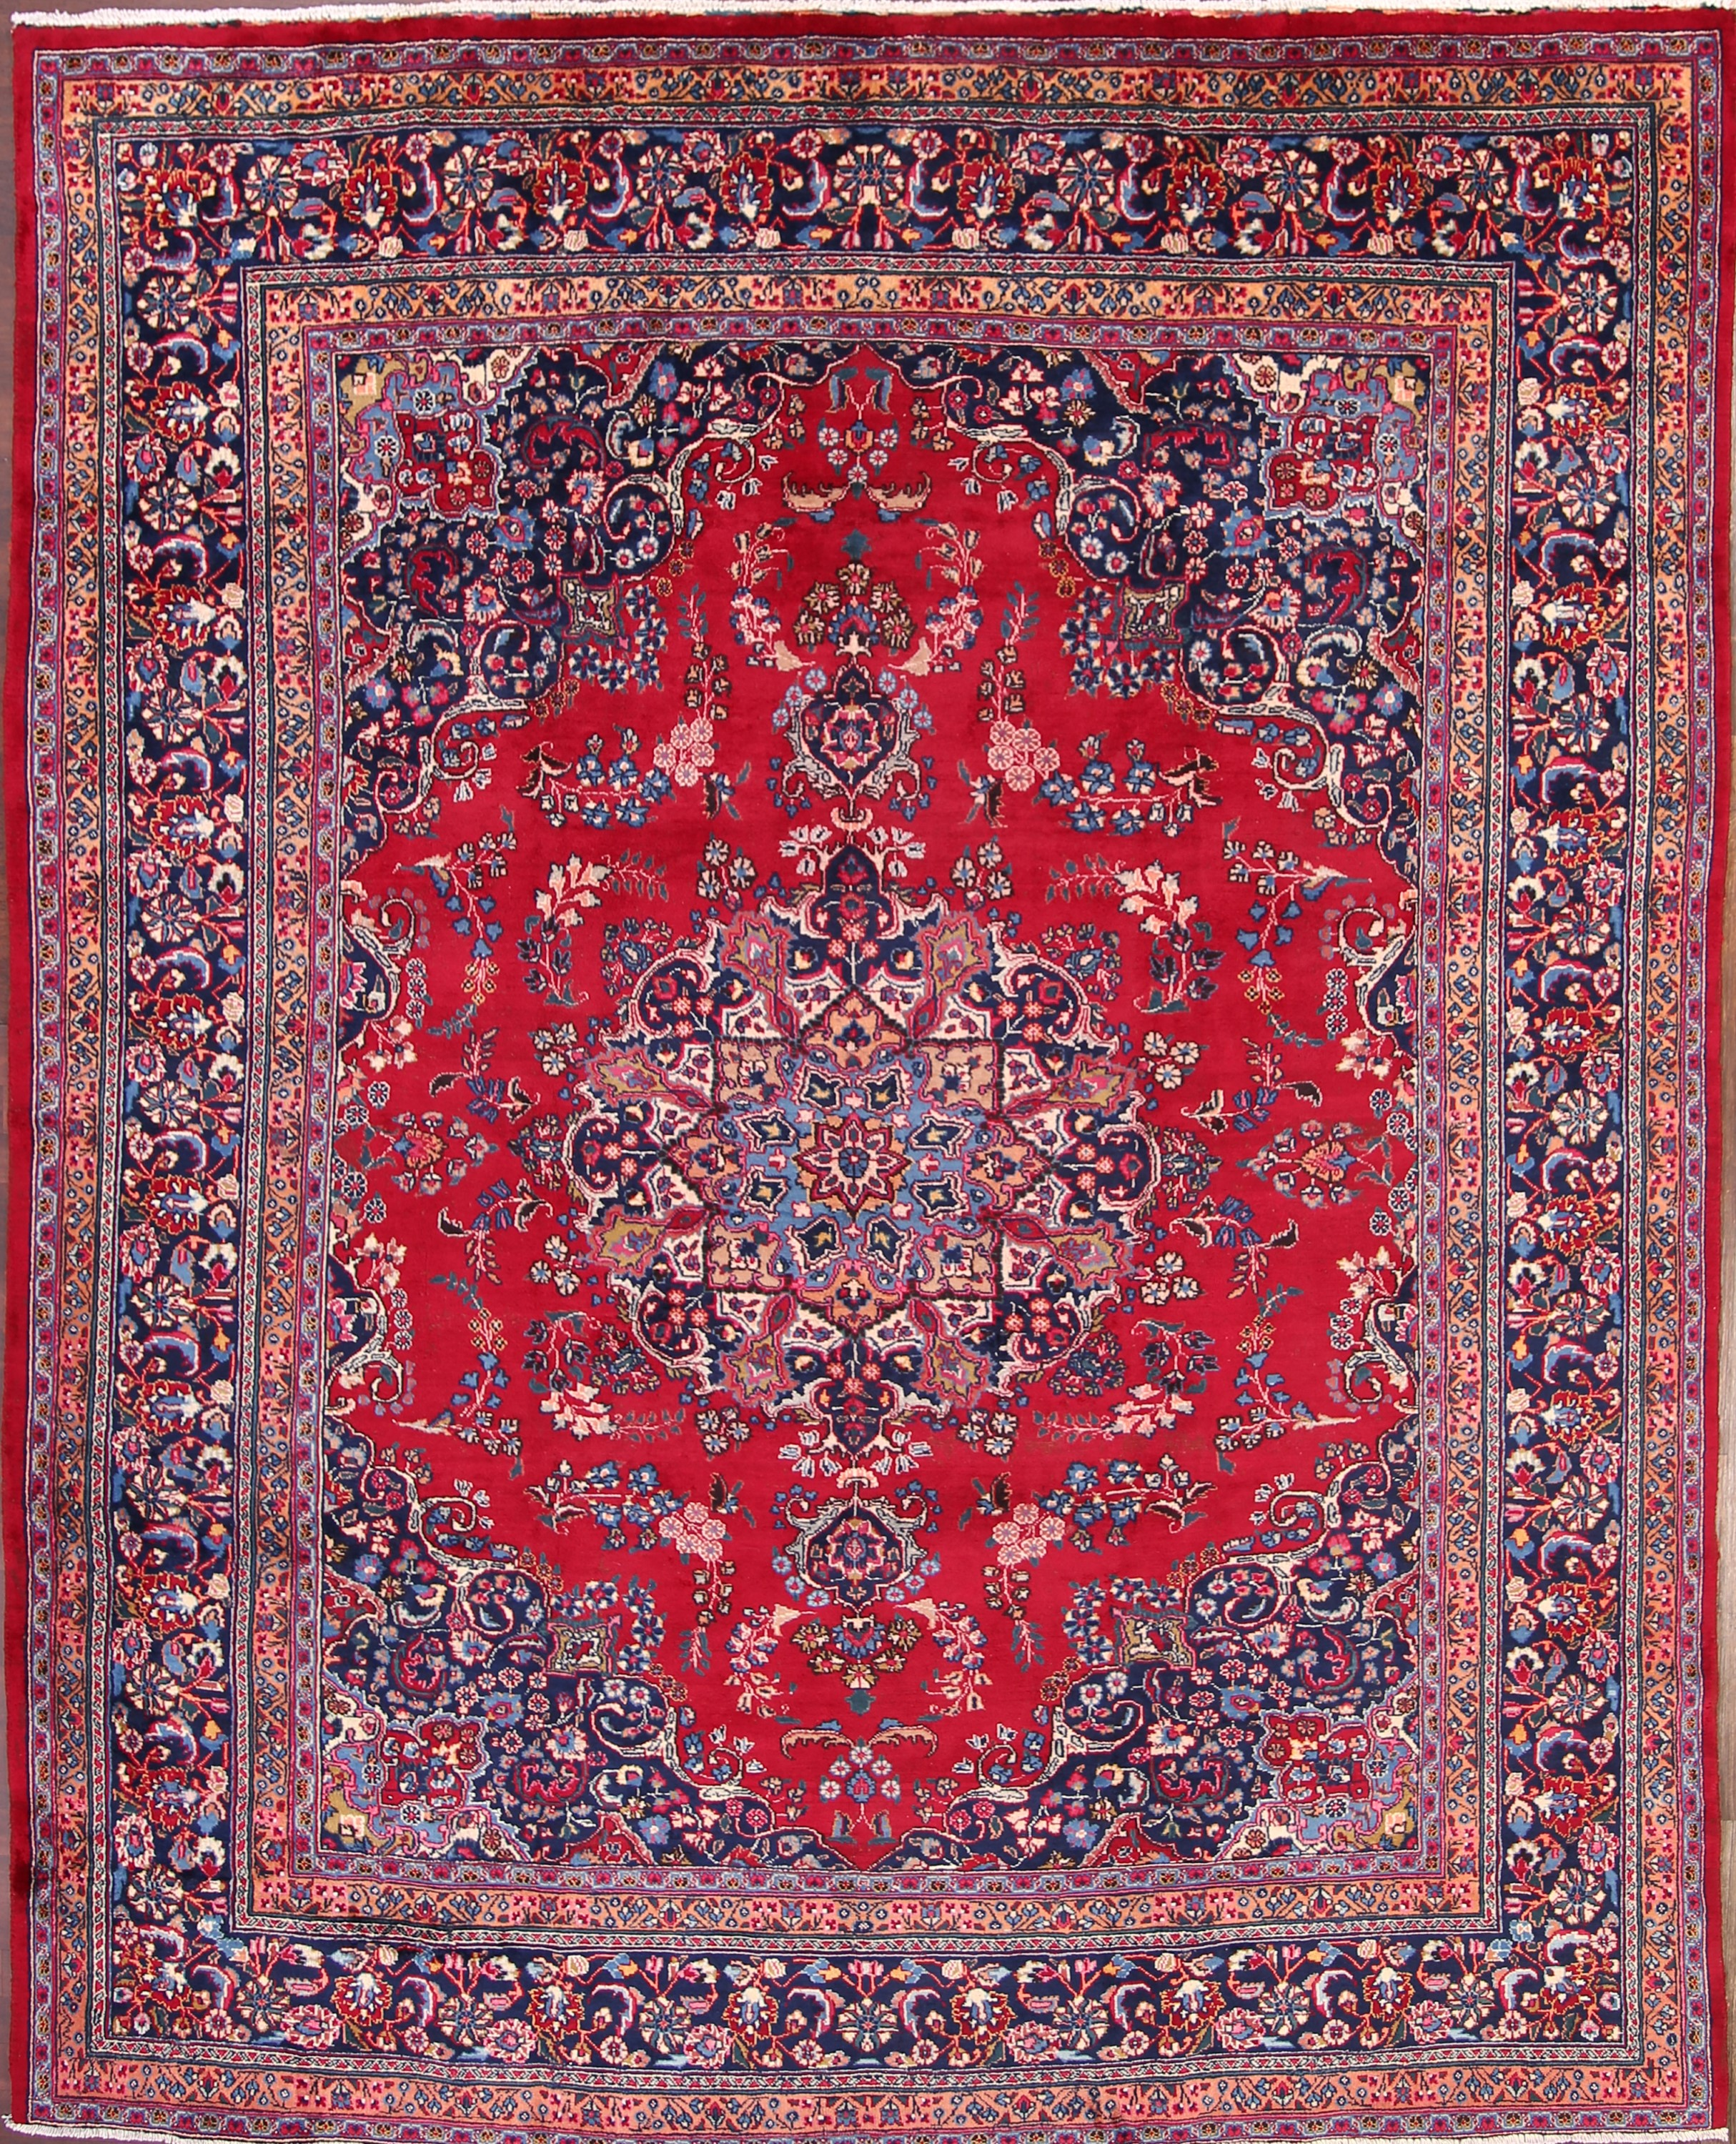 Clearance 9x12 Area Rugs at Overstockcom